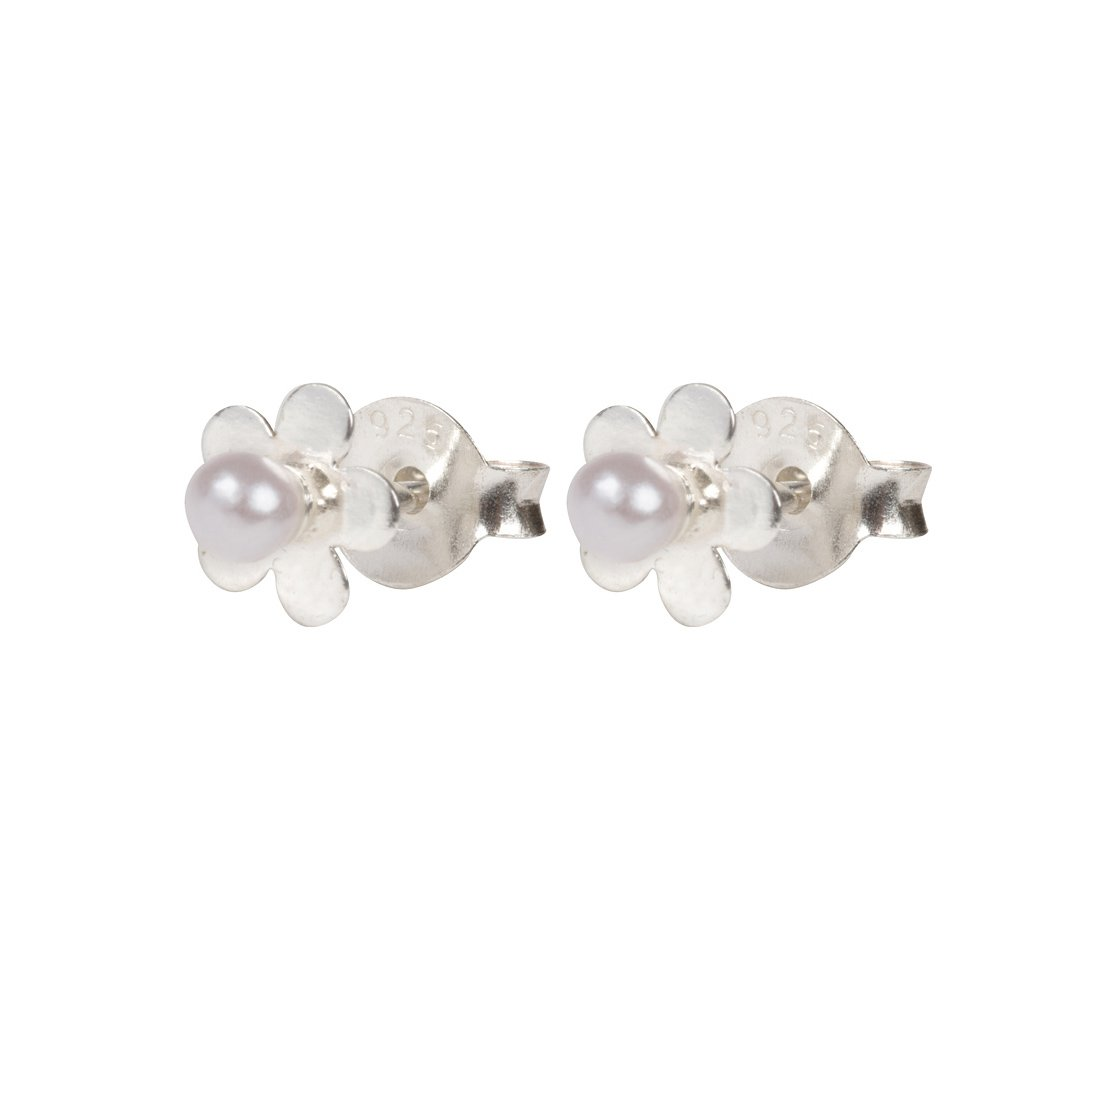 Cherished Moments Daisy Pearl Earrings For Children